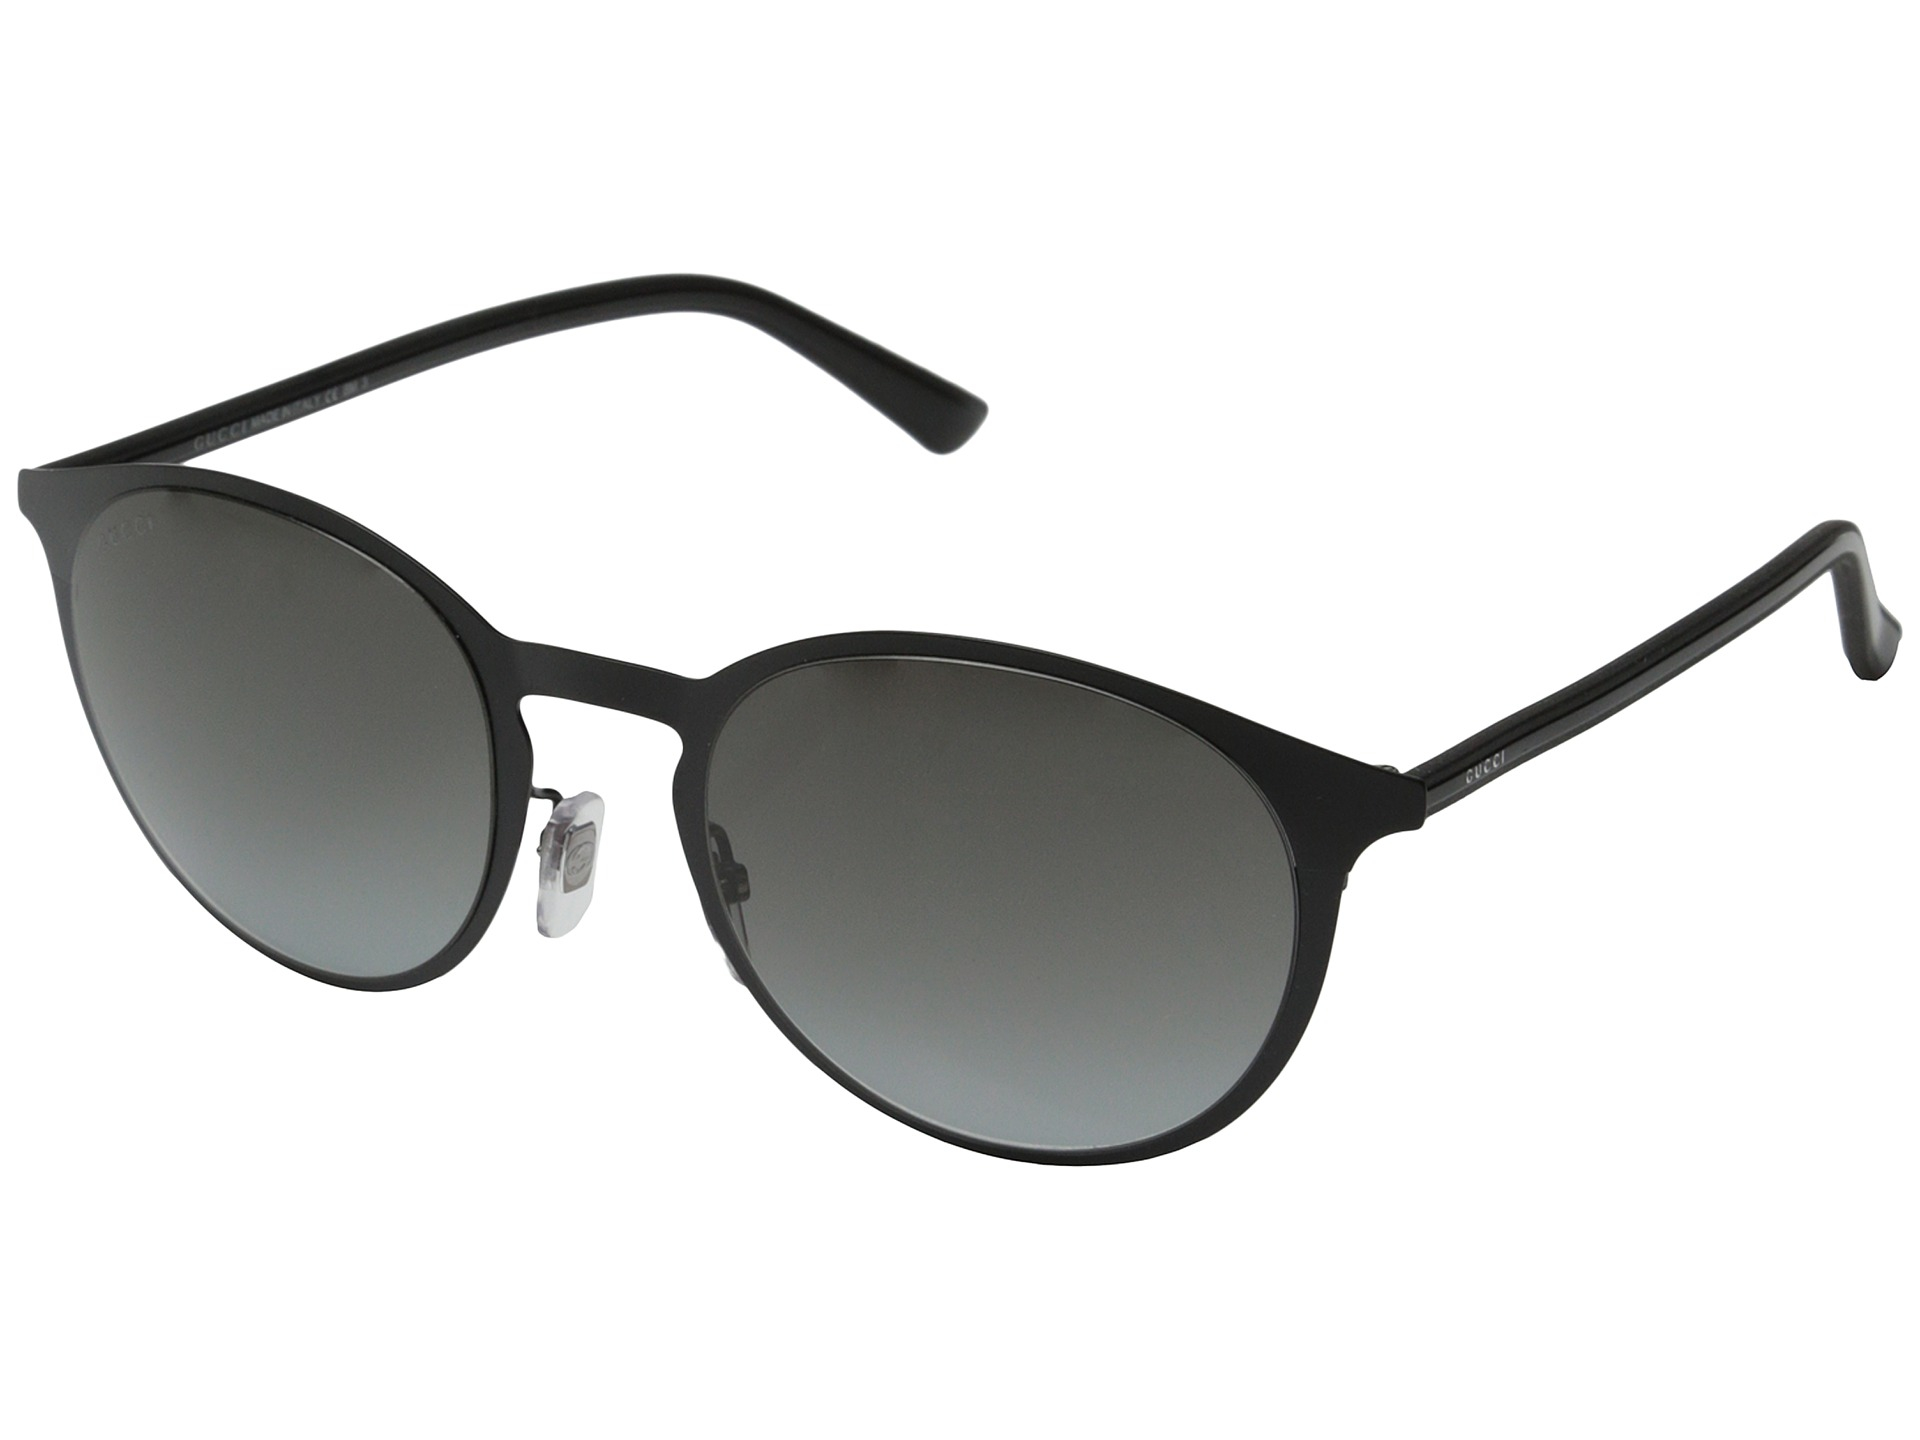 adbaabe23b Lyst - Gucci Gg 2263 s in Black for Men